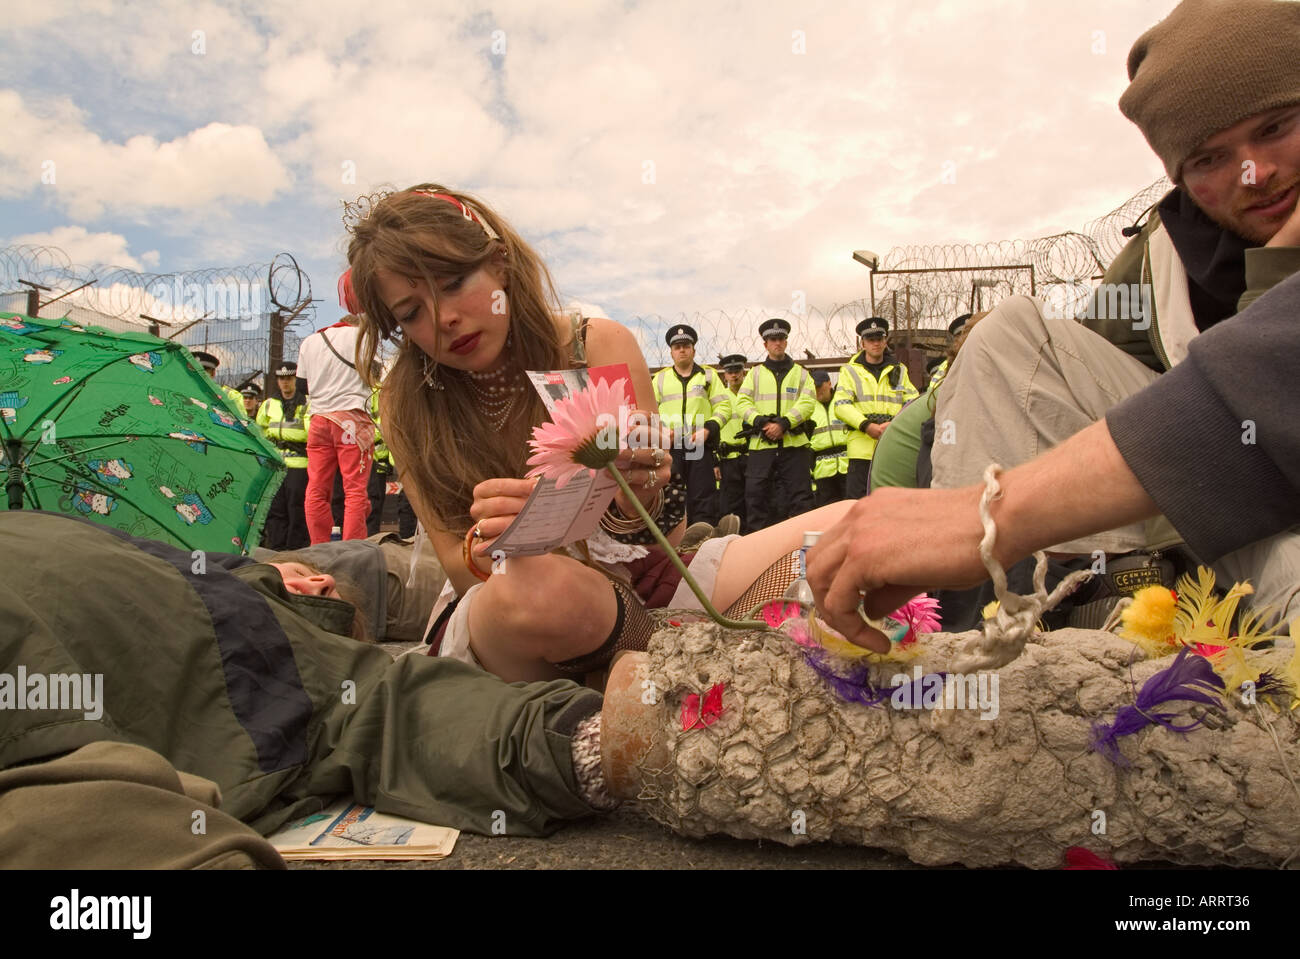 Peace protesters at anti G8 rally, Faslane nuclear submarine base, Scotland, 2005. - Stock Image